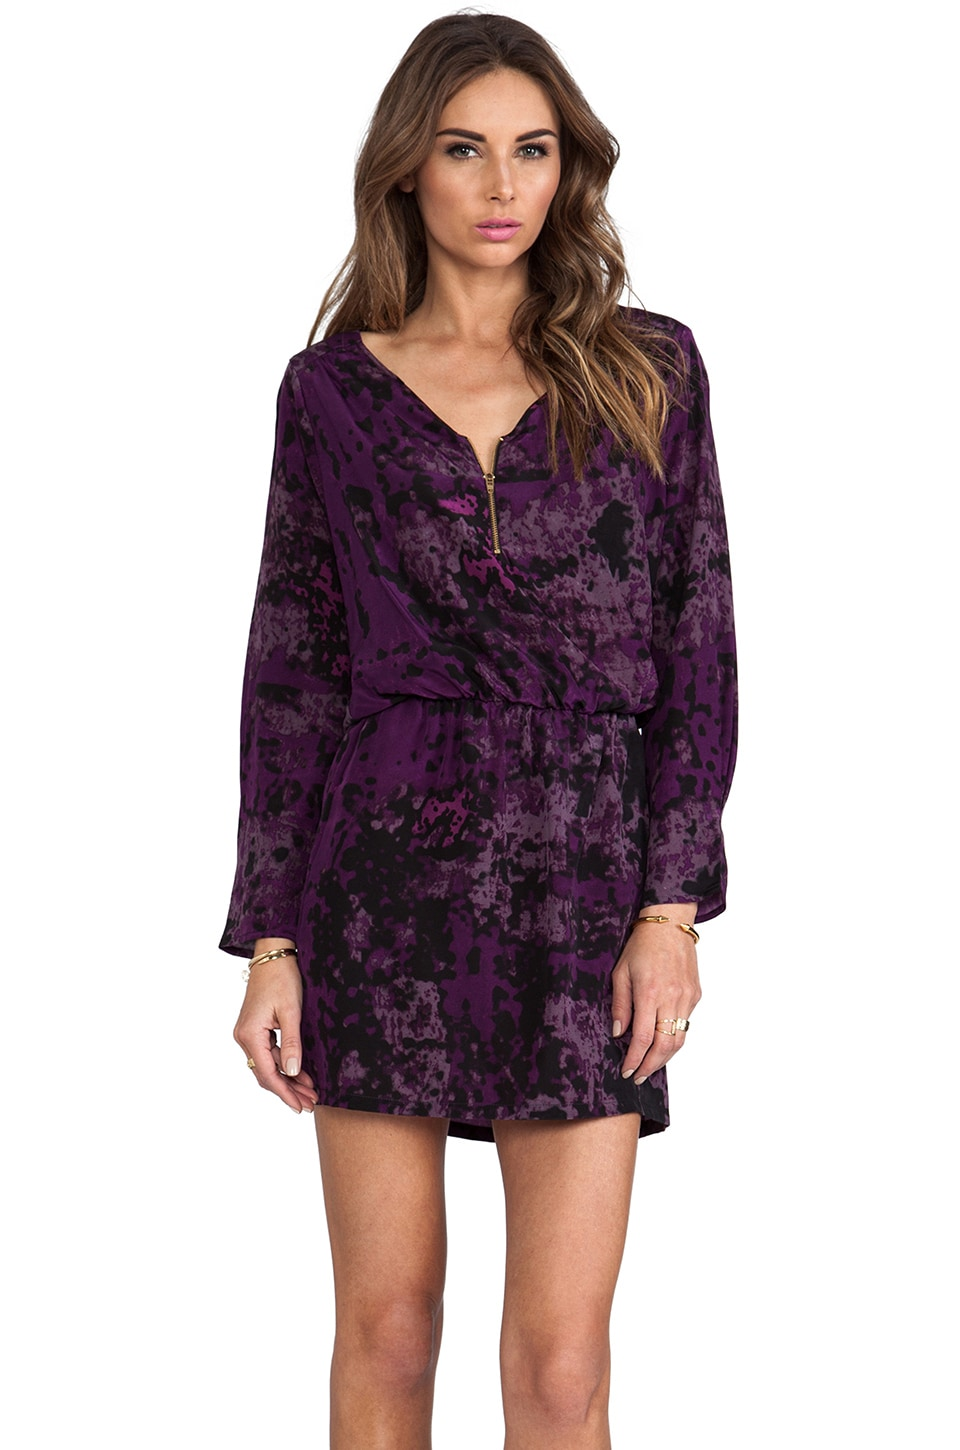 Karina Grimaldi Purple Silk Purple Granite Print Miranda Mini Dress in Purple Granite